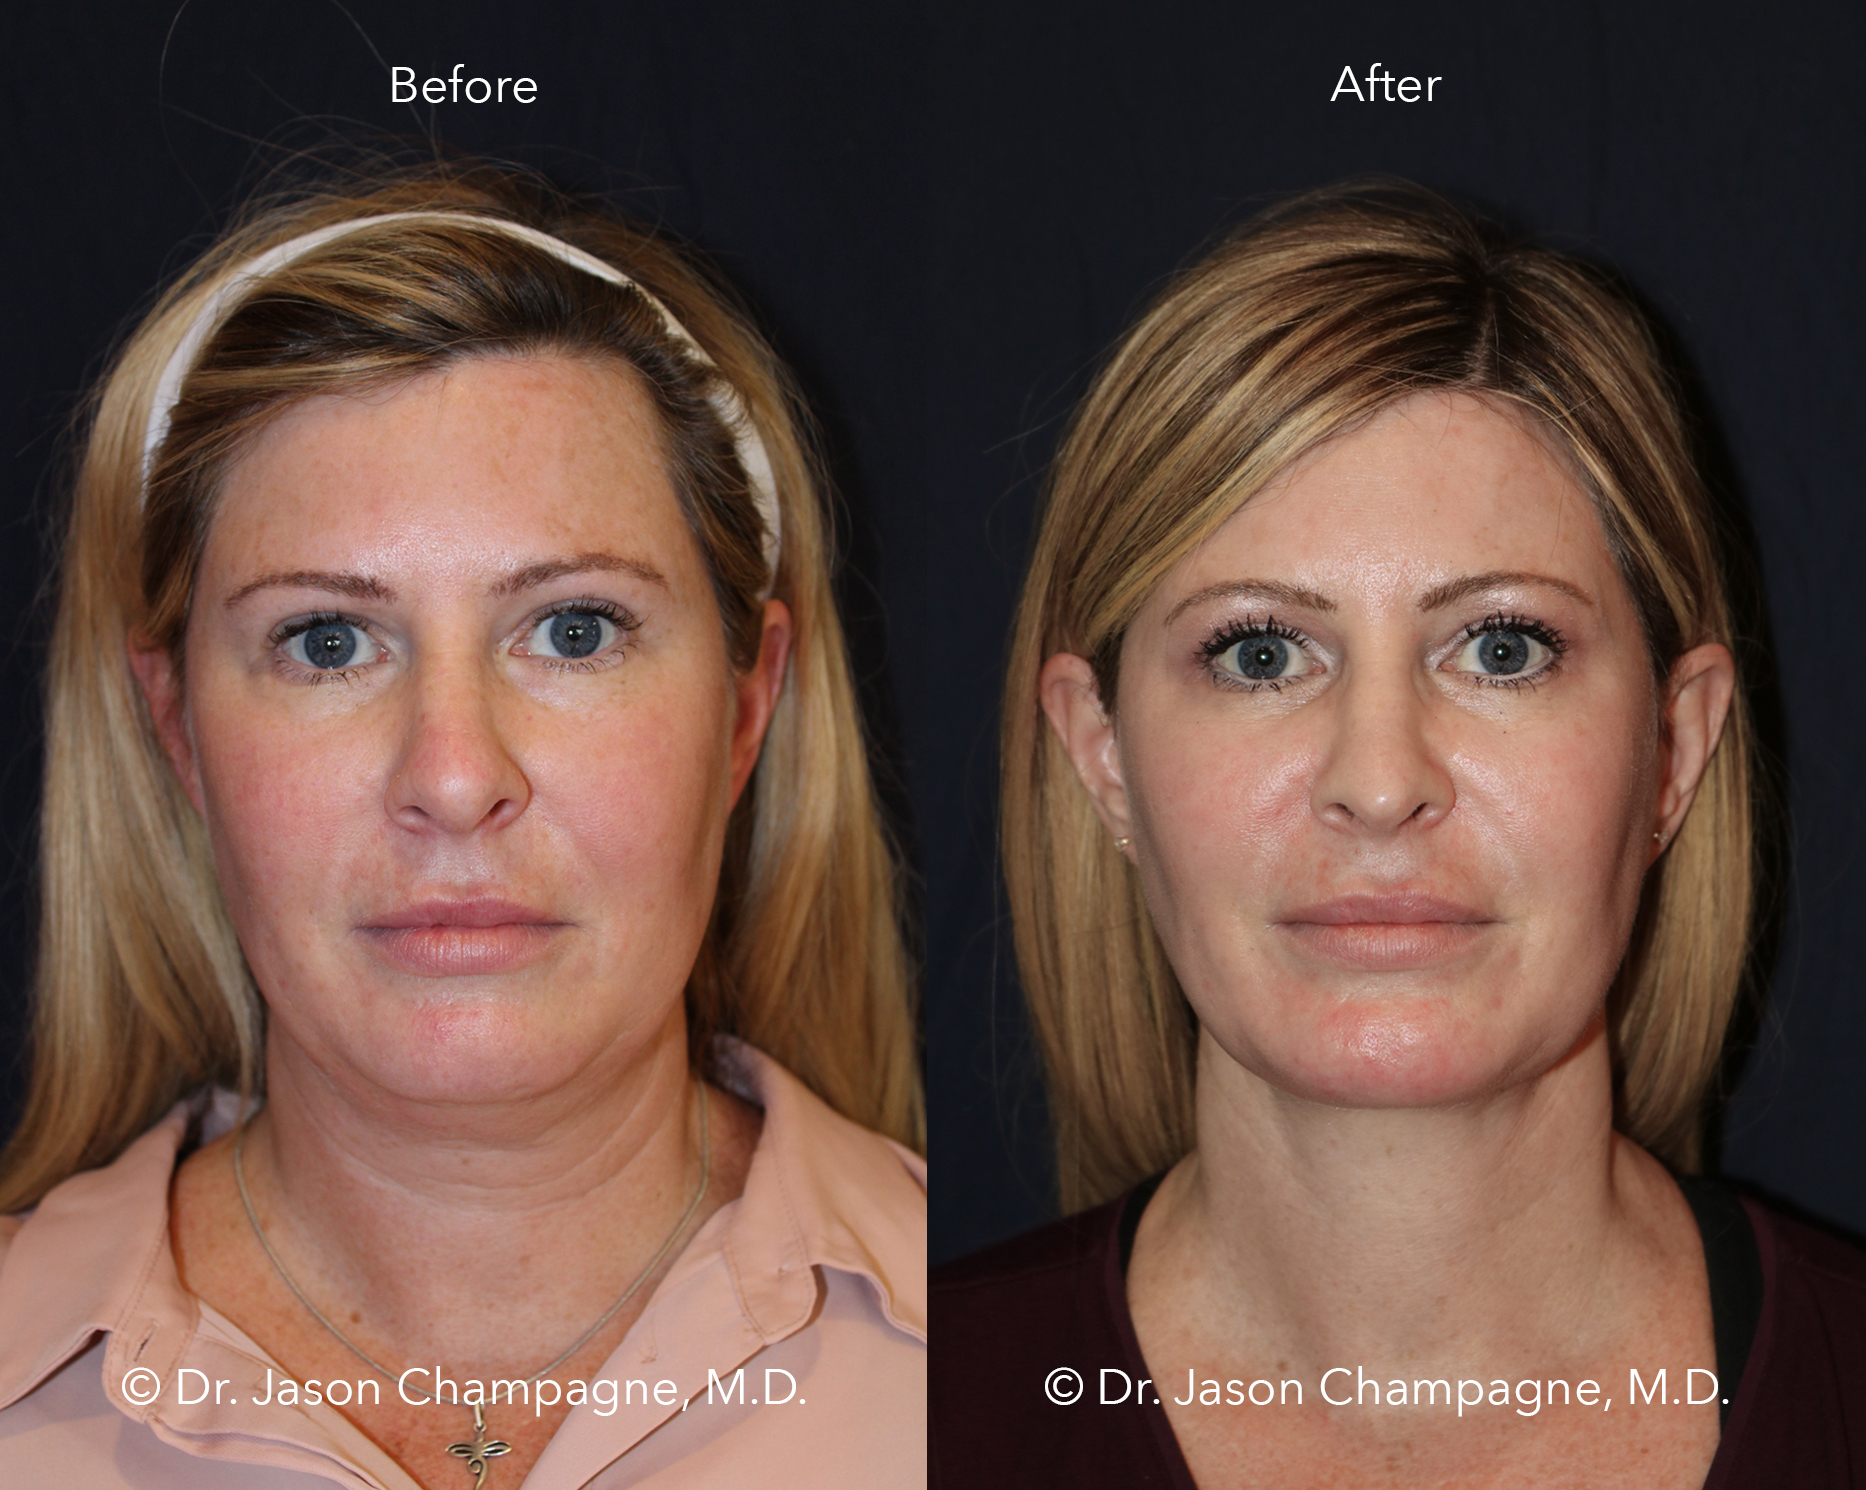 Dr-Jason-Champagne-Neck-Liposuction-Chin-Implant-Neck-Lift-Face-Lift-Rhinoplasty-Advanced-Radio-Frequency-Skin-Tightening-CO2-Laser-Skin-Resurfacing-Buccal-Fat-Excision-Before-and-After-Front